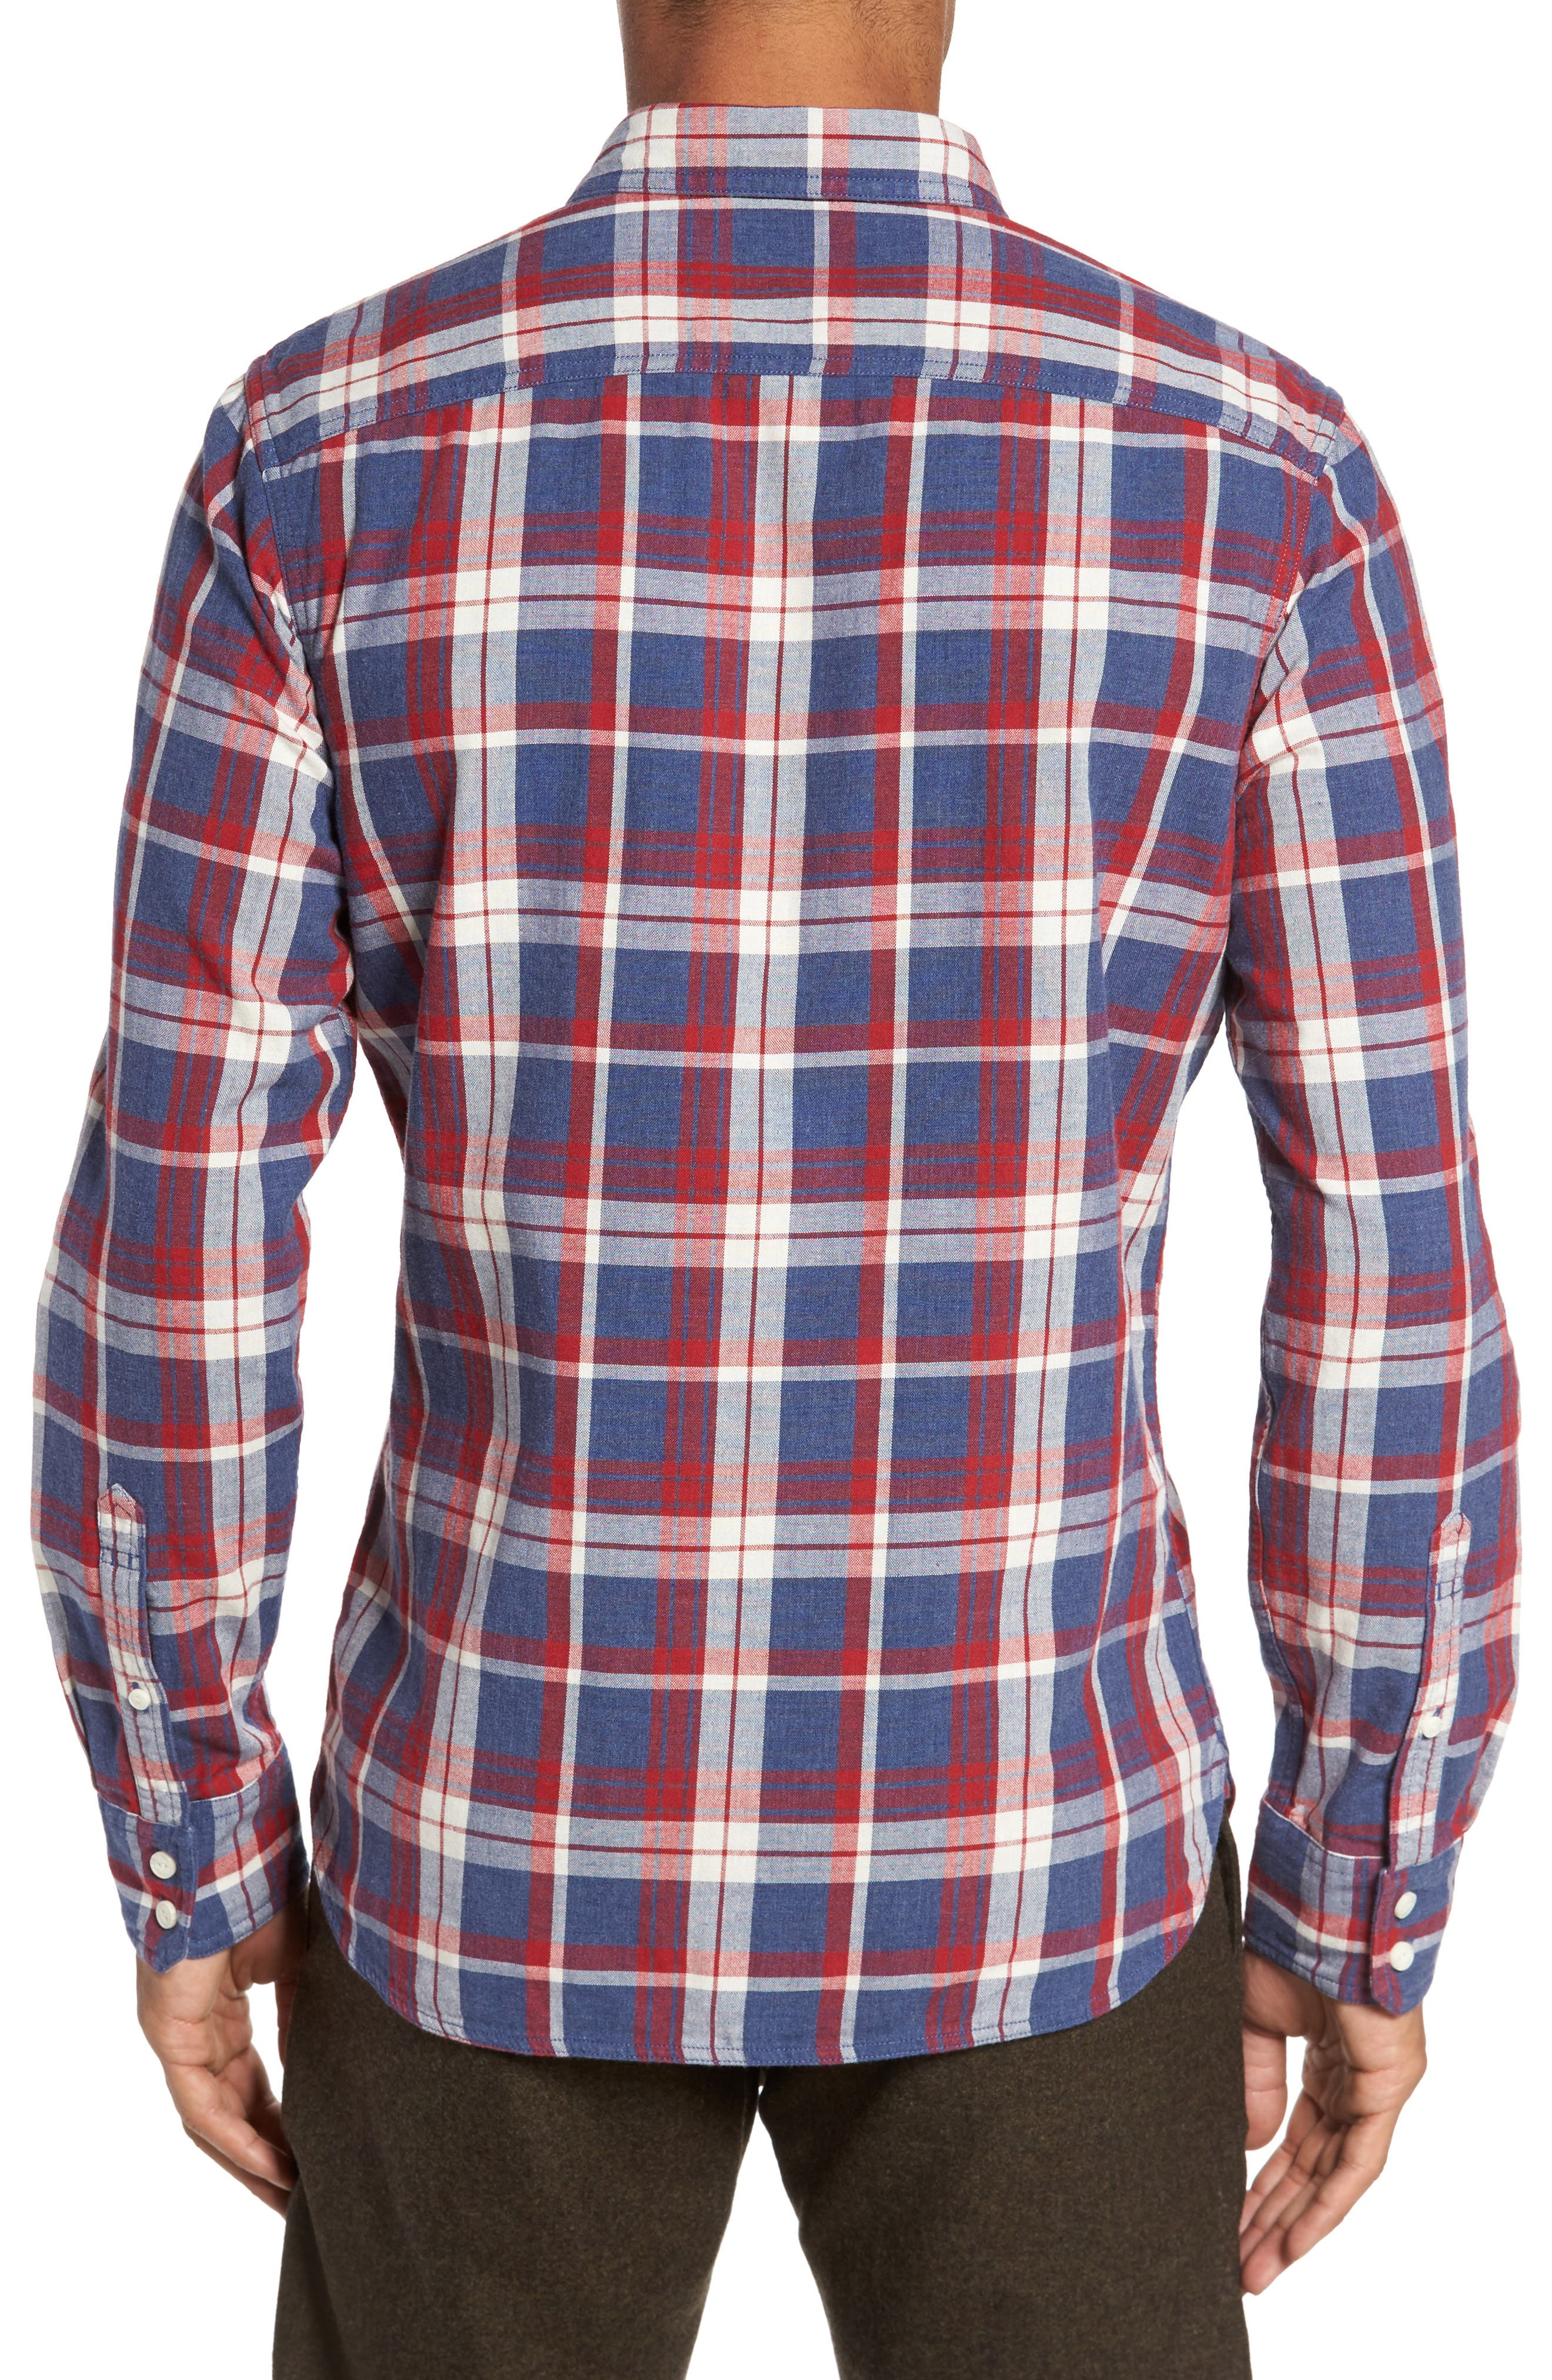 Trim Fit Workwear Duofold Plaid Sport Shirt,                             Alternate thumbnail 2, color,                             Blue Ensign Red Plaid Duofold